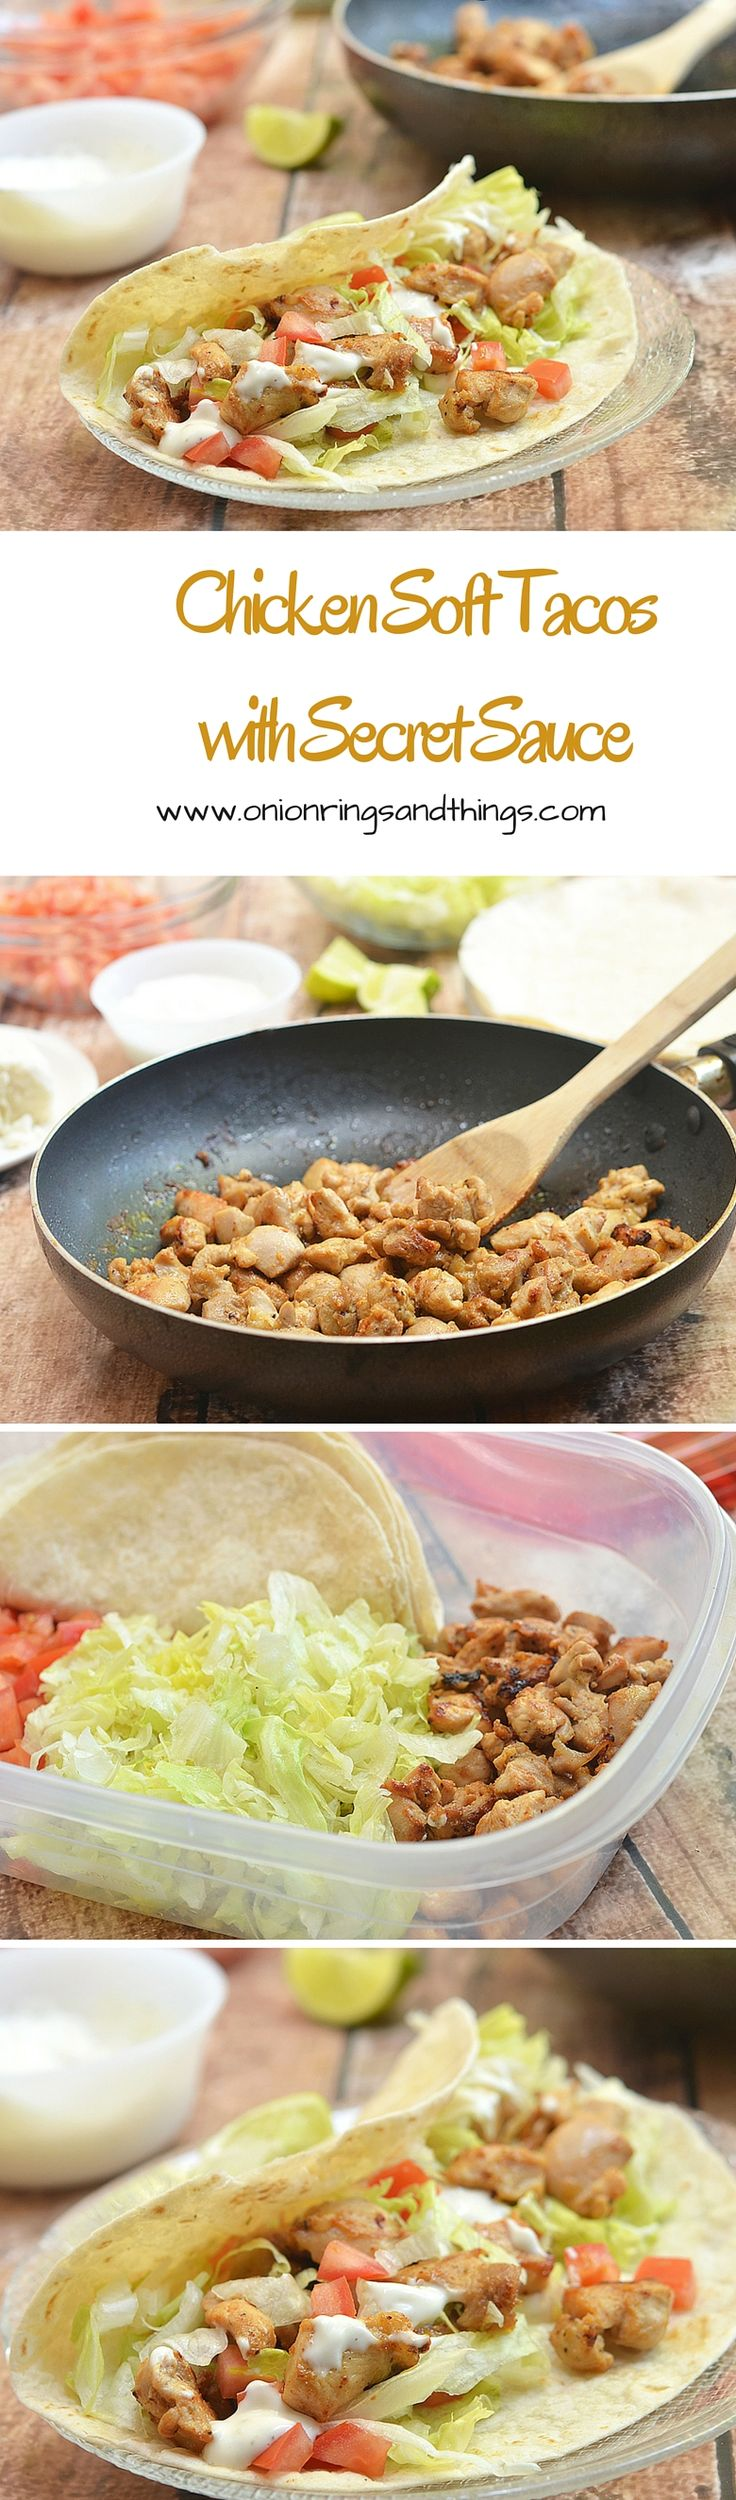 Chicken Soft Tacos with Secret Sauce are made what's for dinner! With flavorful chicken morsels, taco fixings wrapped in soft tortillas and drizzled with a dreamy Del Taco-inspired sauce, they are quick and easy to make yet packs big, bold flavors